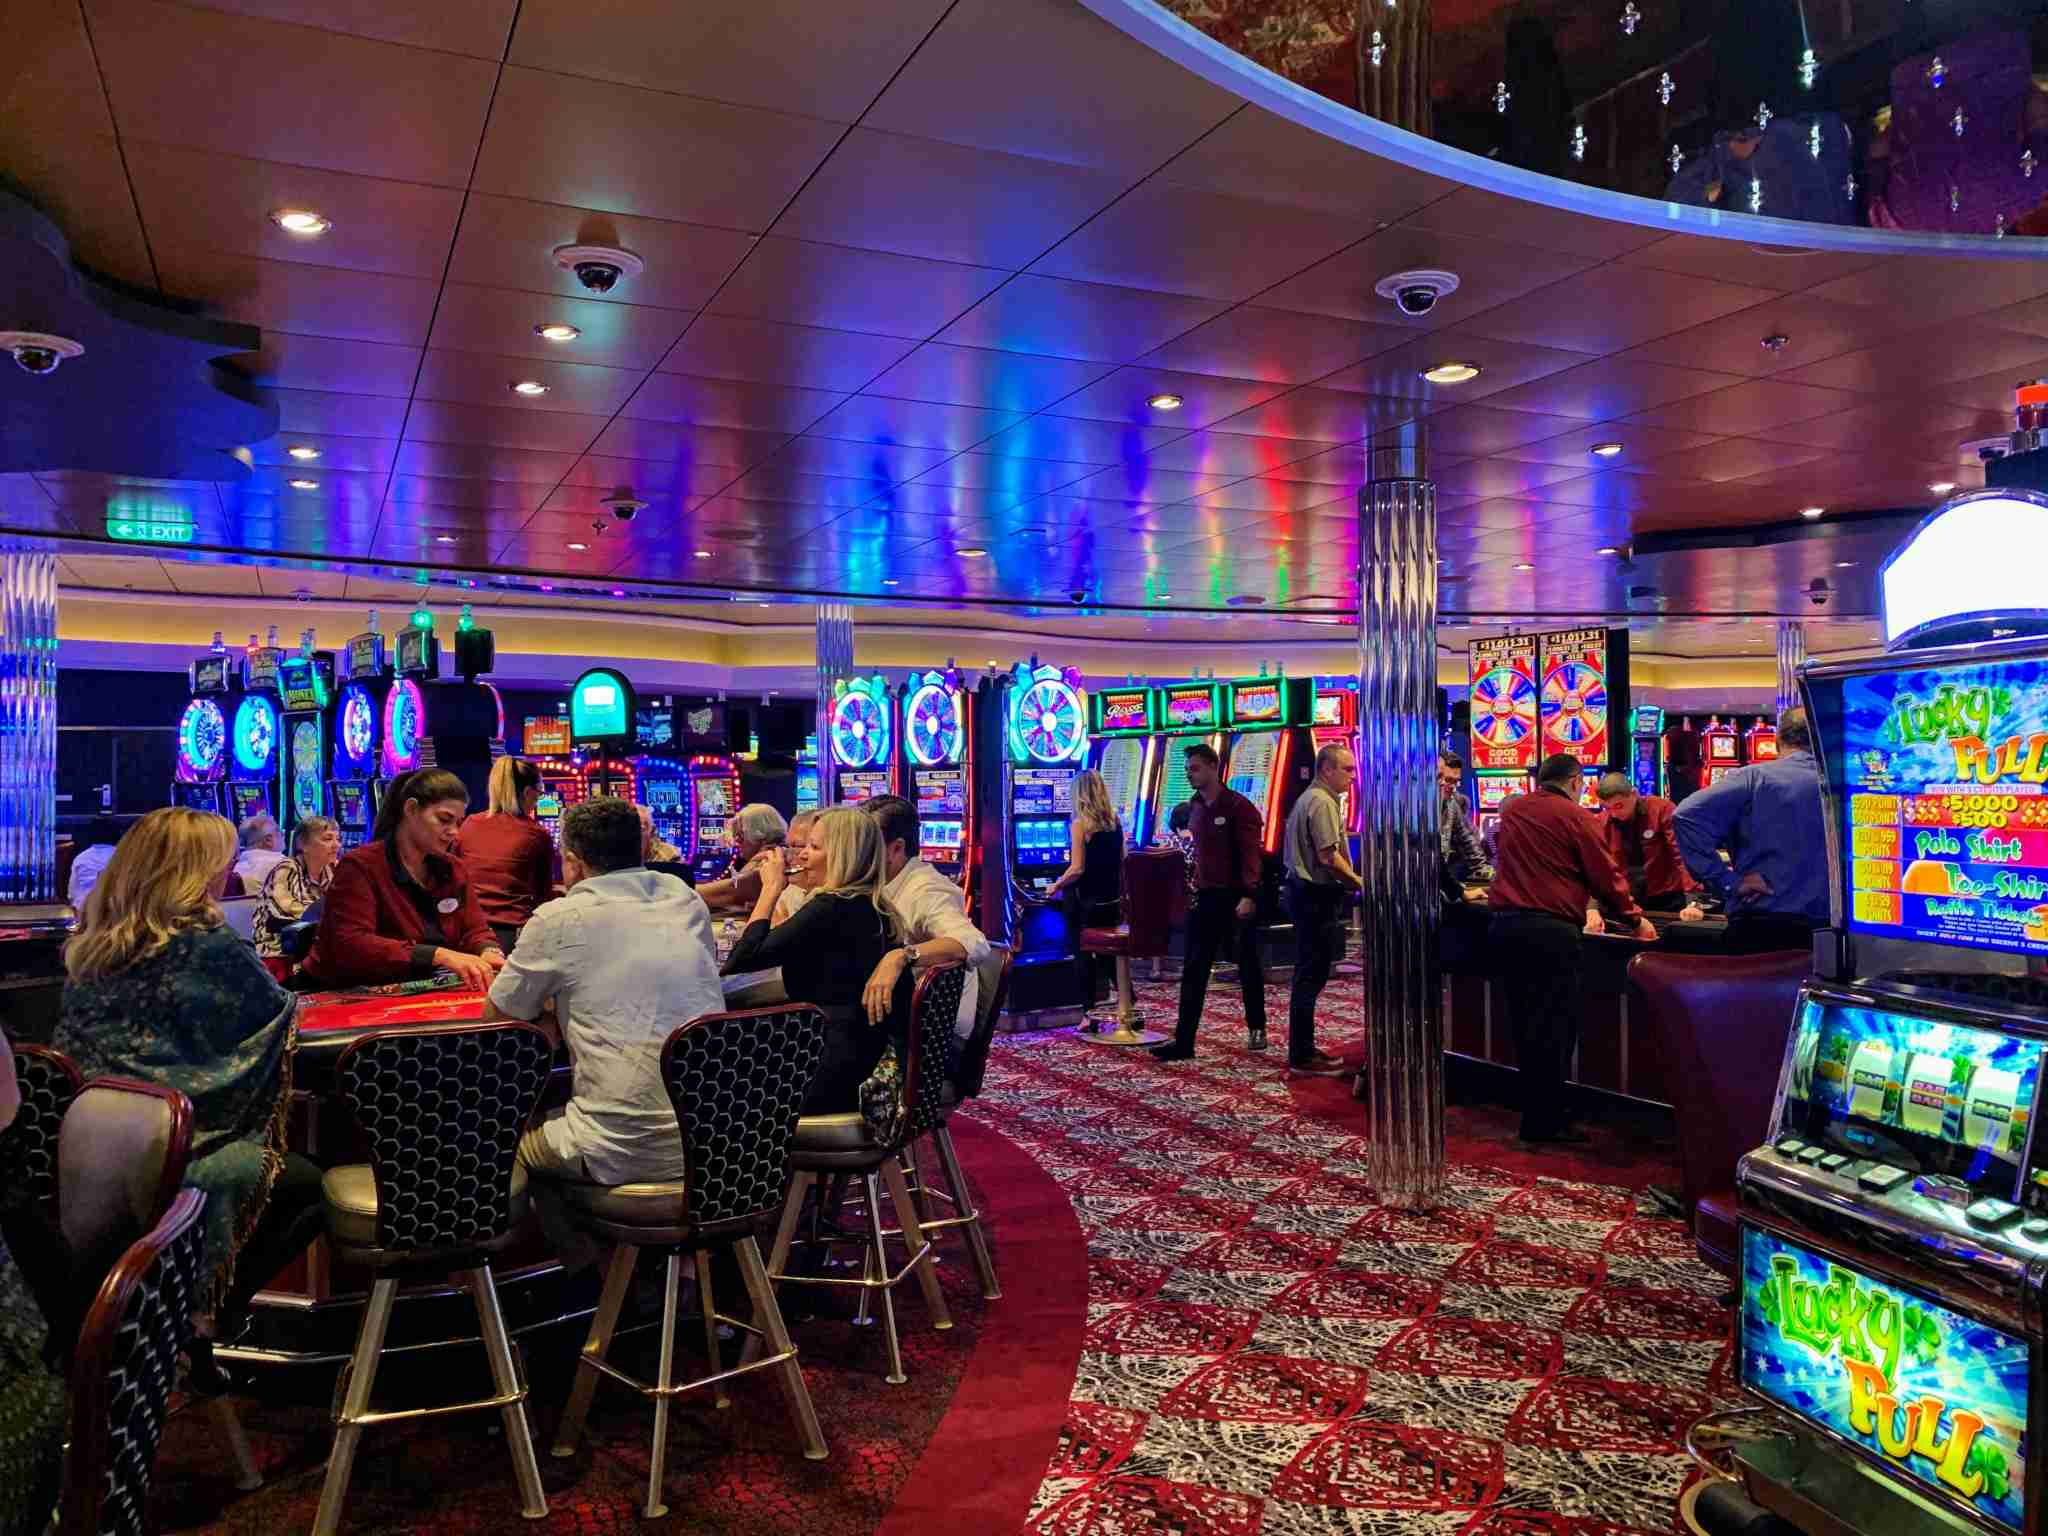 Royal Caribbean Symphony of the Seas - Casino Royale